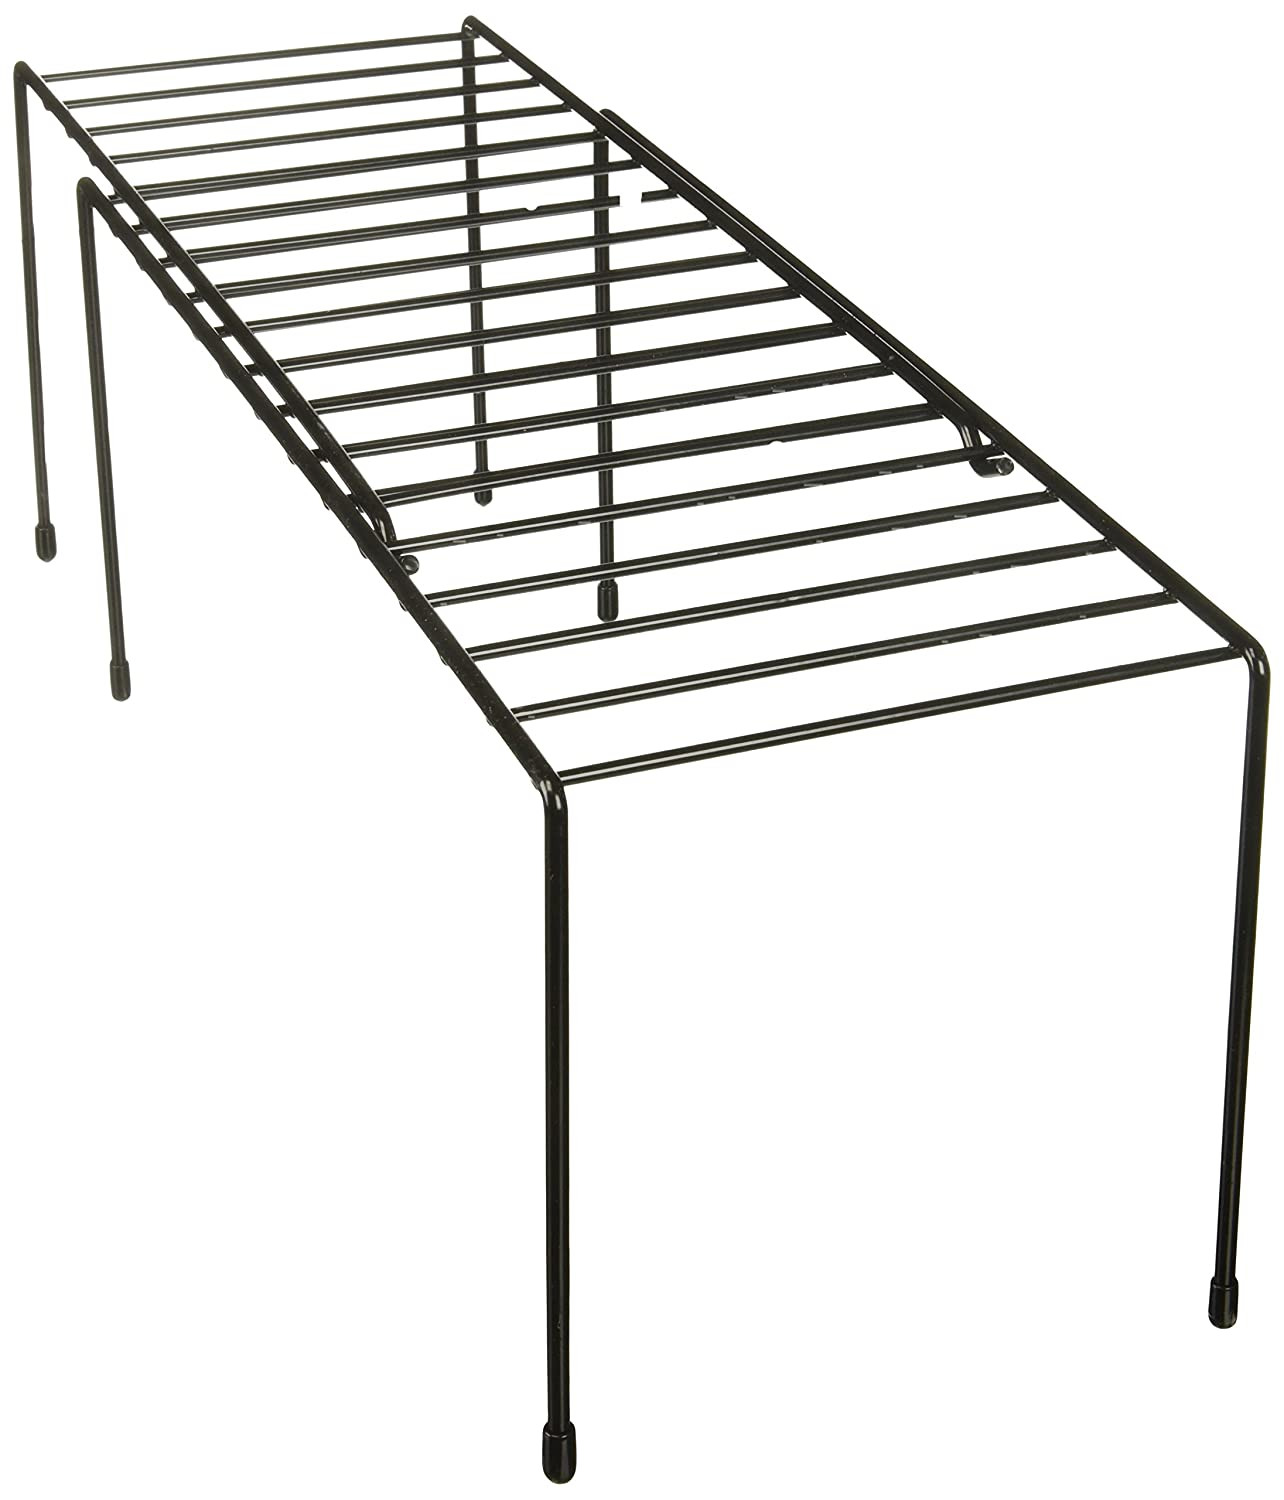 Honey Can Do KCH 04370 Adjustable Coated Steel Wire Shelf 5.9 by 14.8 26 by 6 Inch